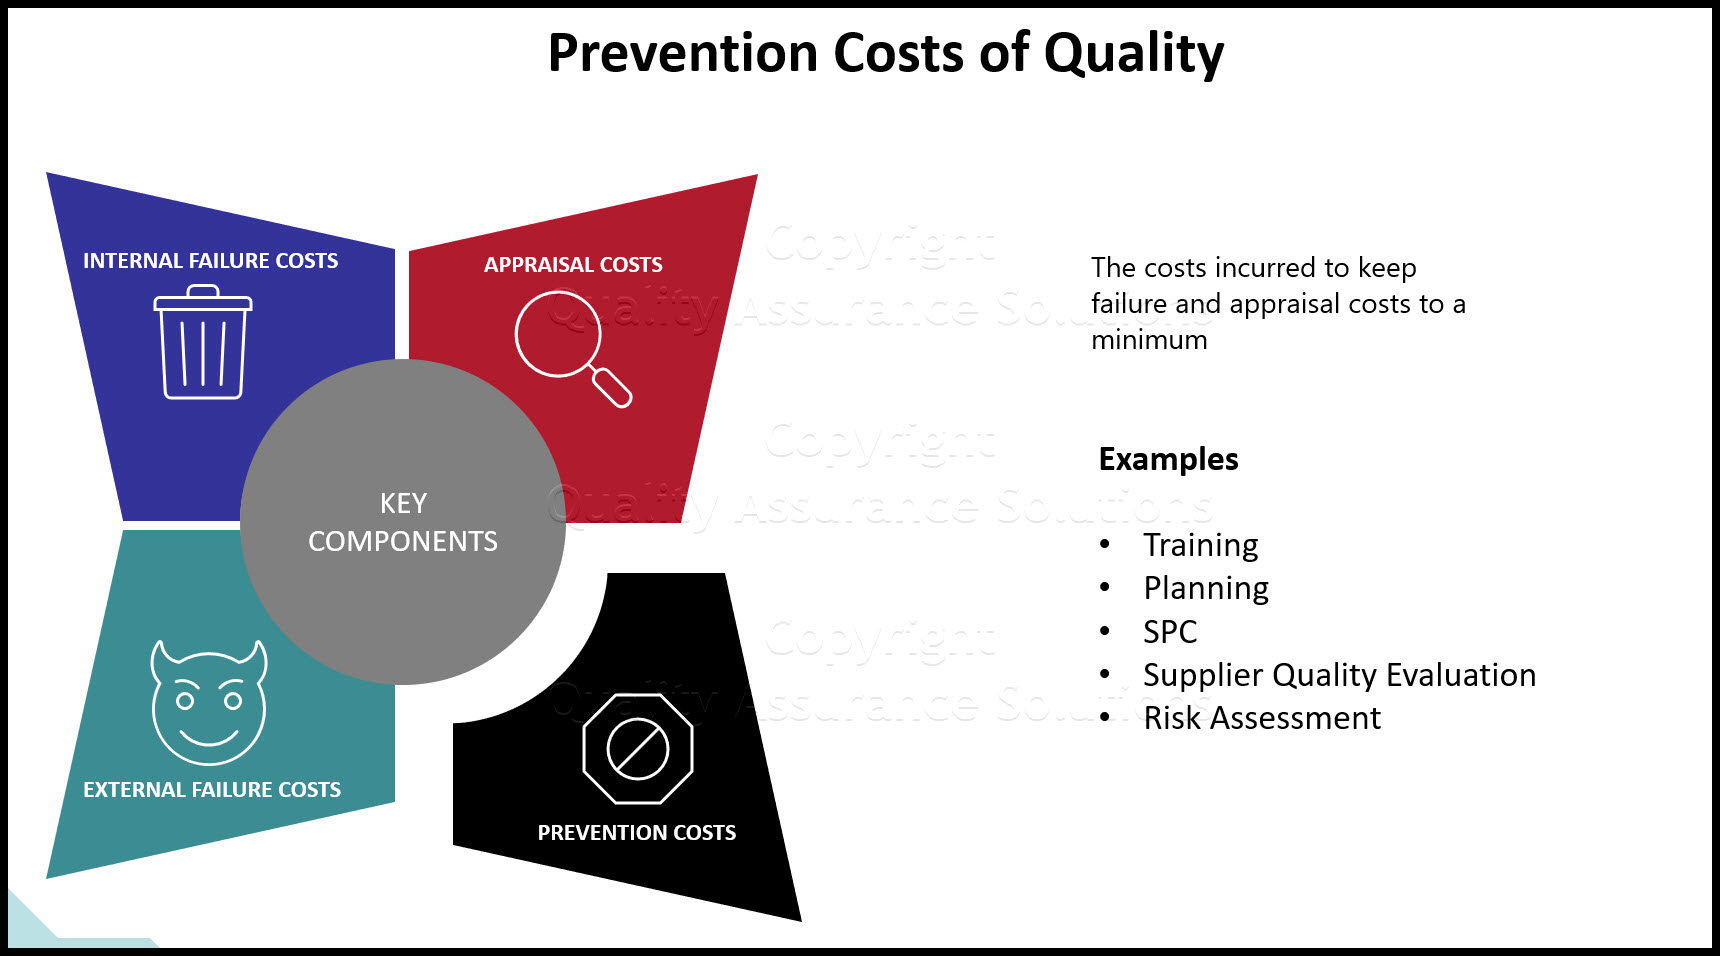 Prevention Costs of Quality Costs